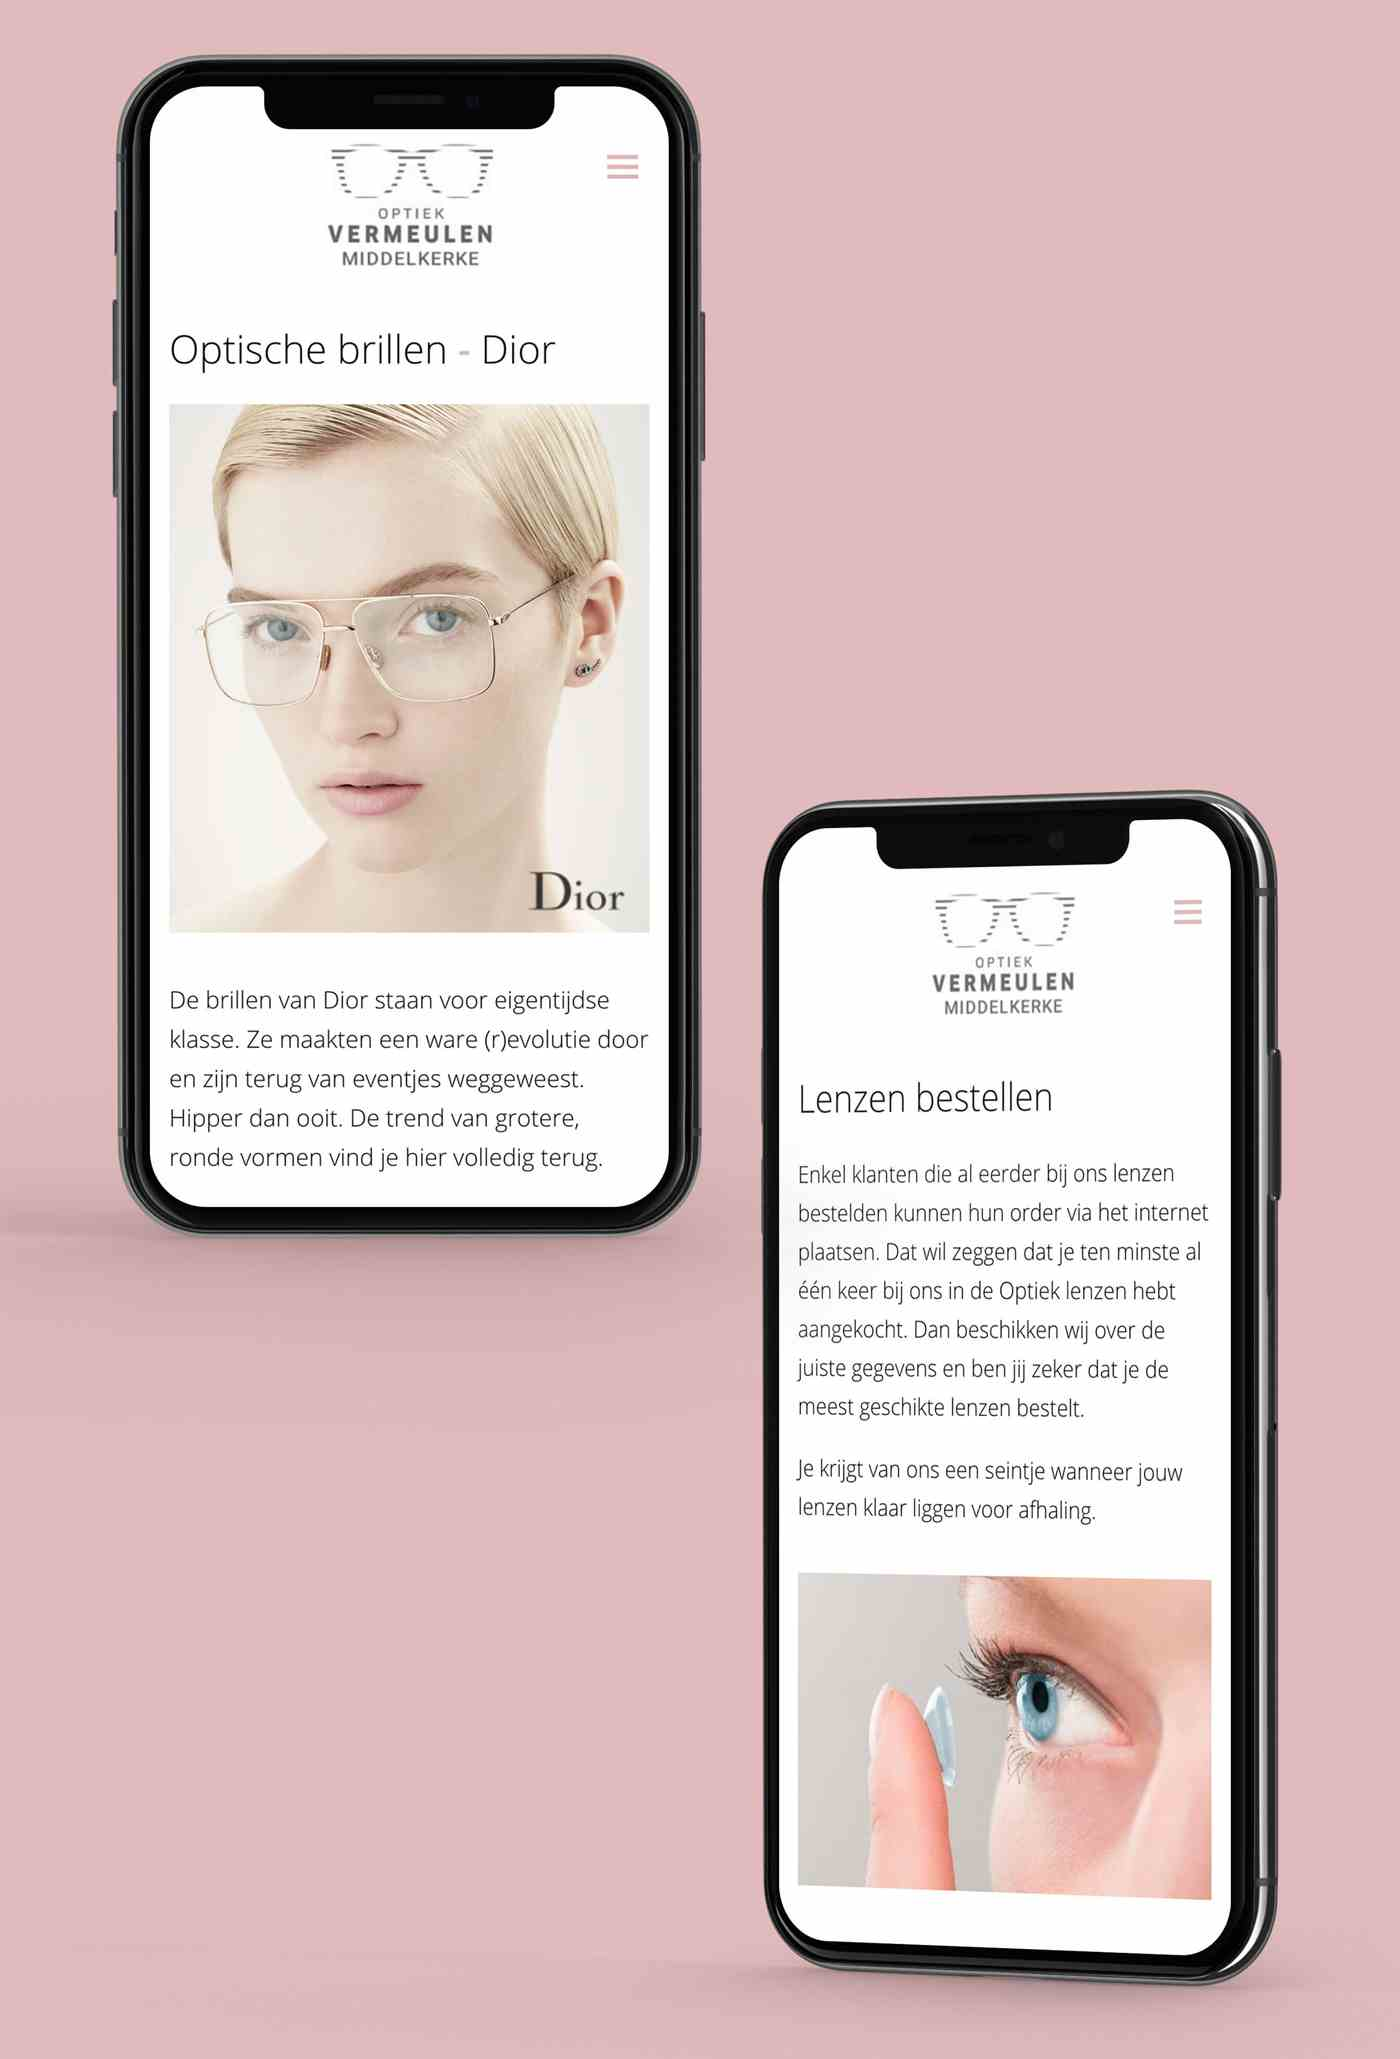 optiek-vermeulen-middelkerke-website-smartphone-2